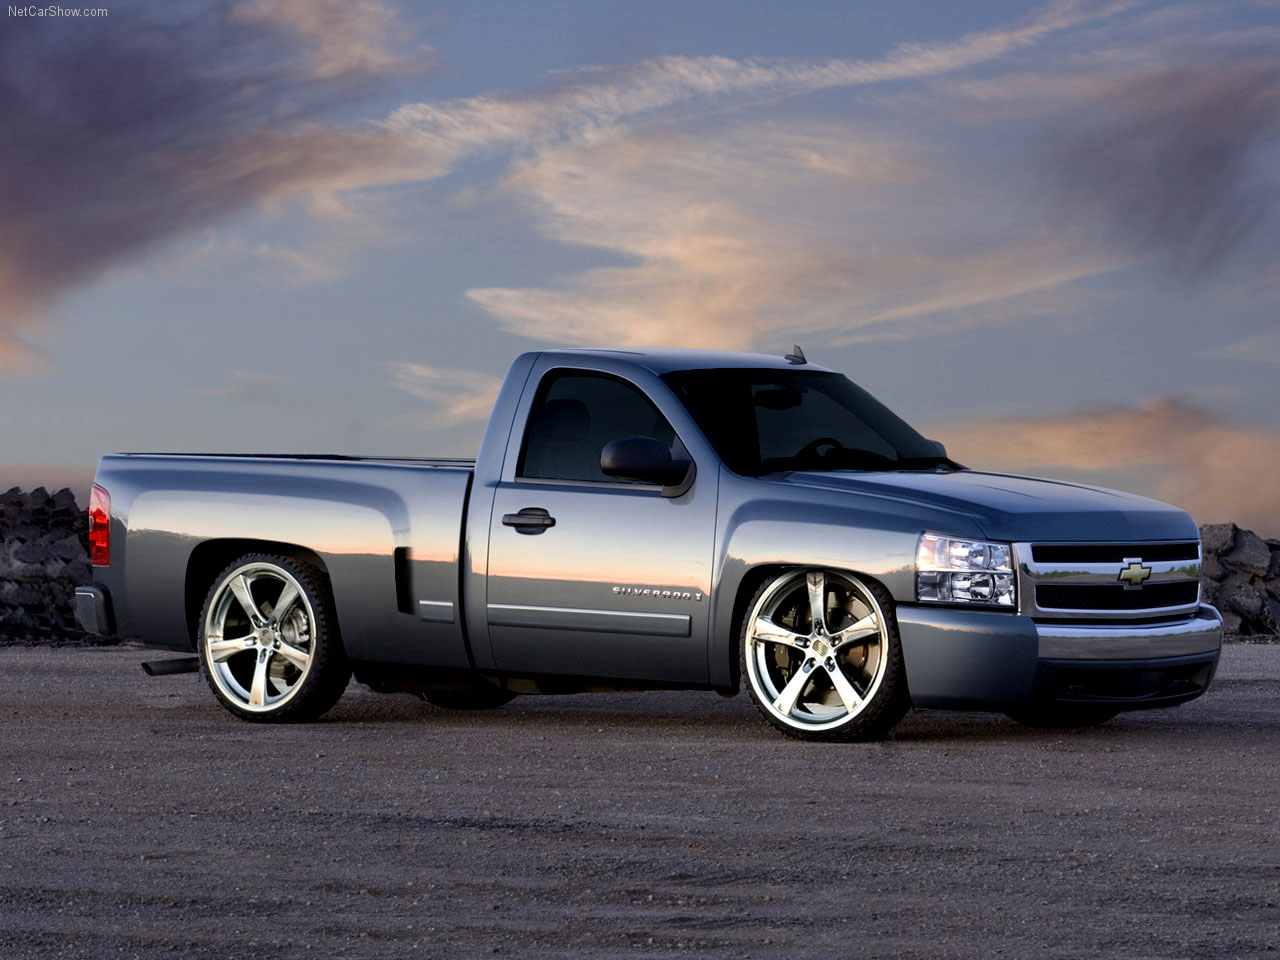 Coches » 15-1 Wallpaper de camioneta Chevy Silverado